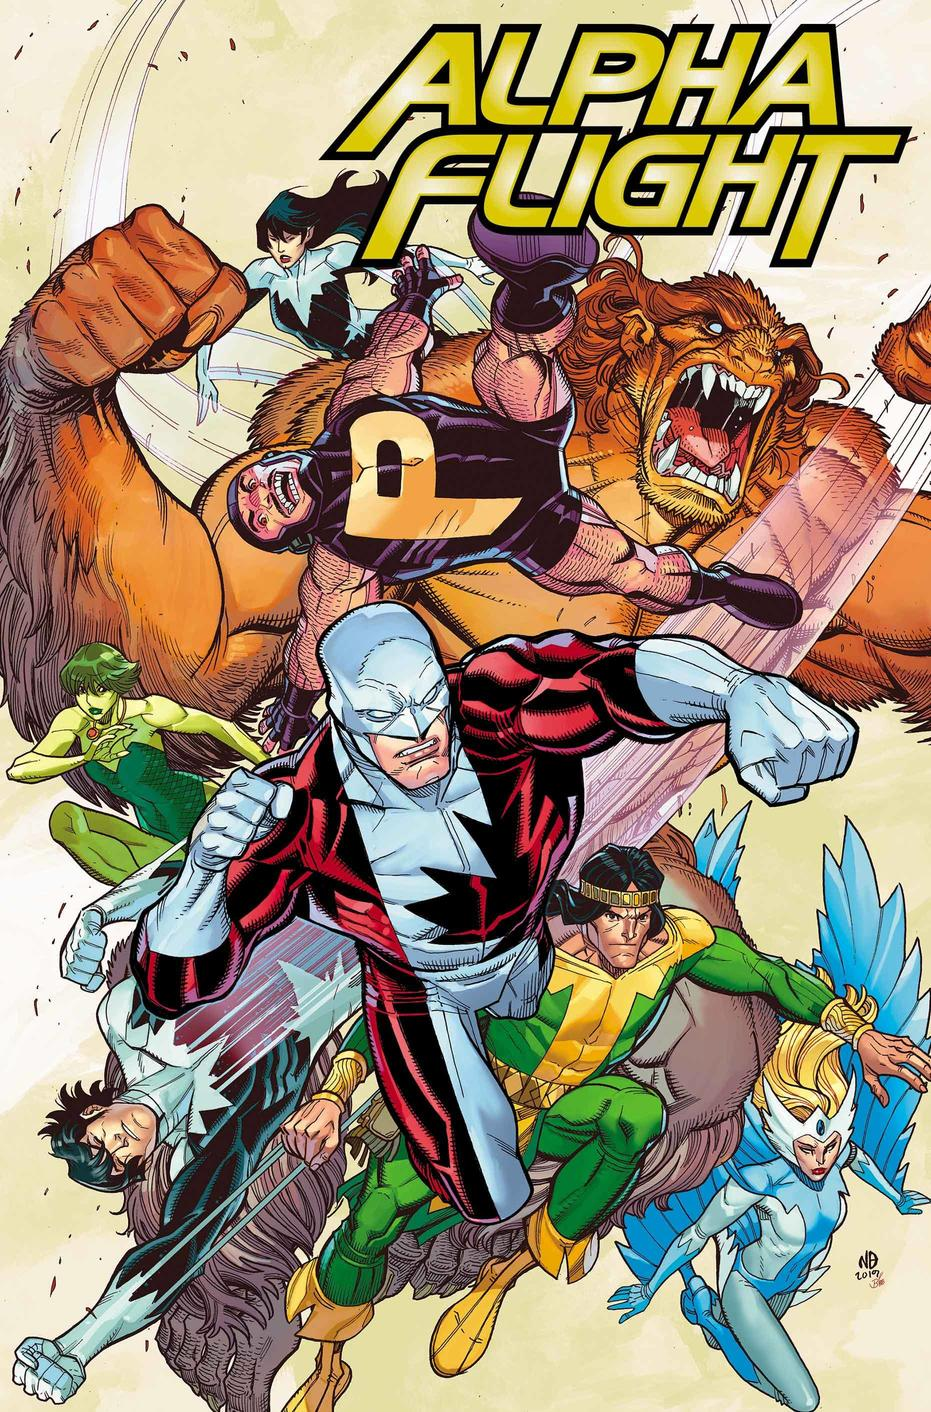 ALPHA FLIGHT: TRUE NORTH #1!